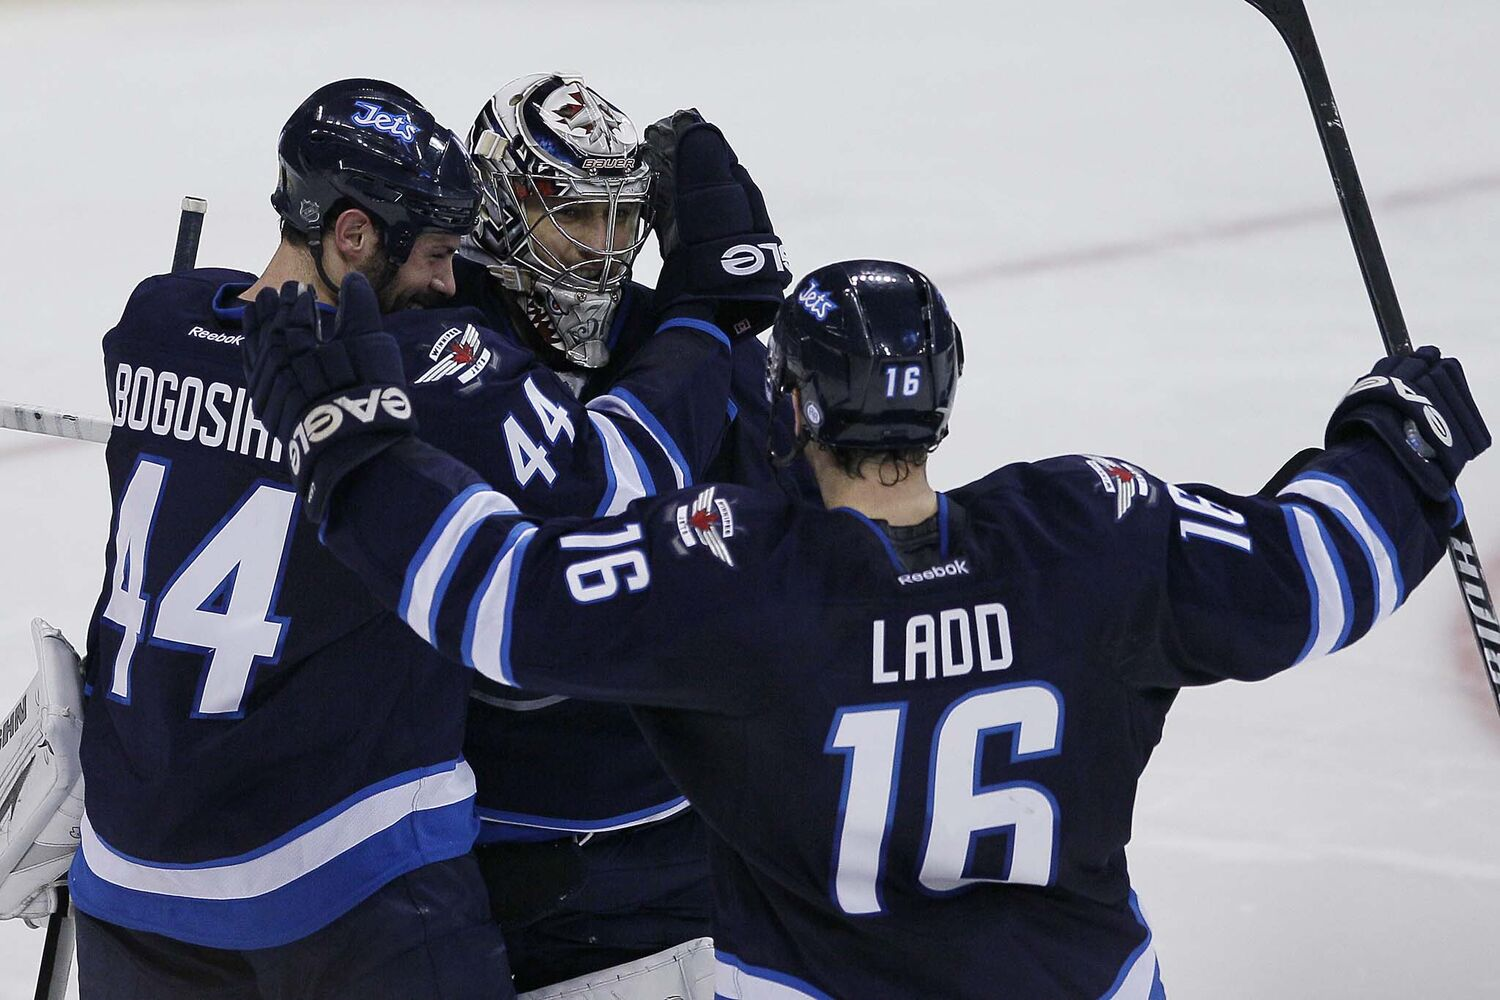 Winnipeg Jets' Zach Bogosian (44), goaltender Ondrej Pavelec (31) and Andrew Ladd (16)¤celebrate their NHL win over the over San Jose Sharks in penalty shots. (JOHN WOODS / WINNIPEG FREE PRESS)